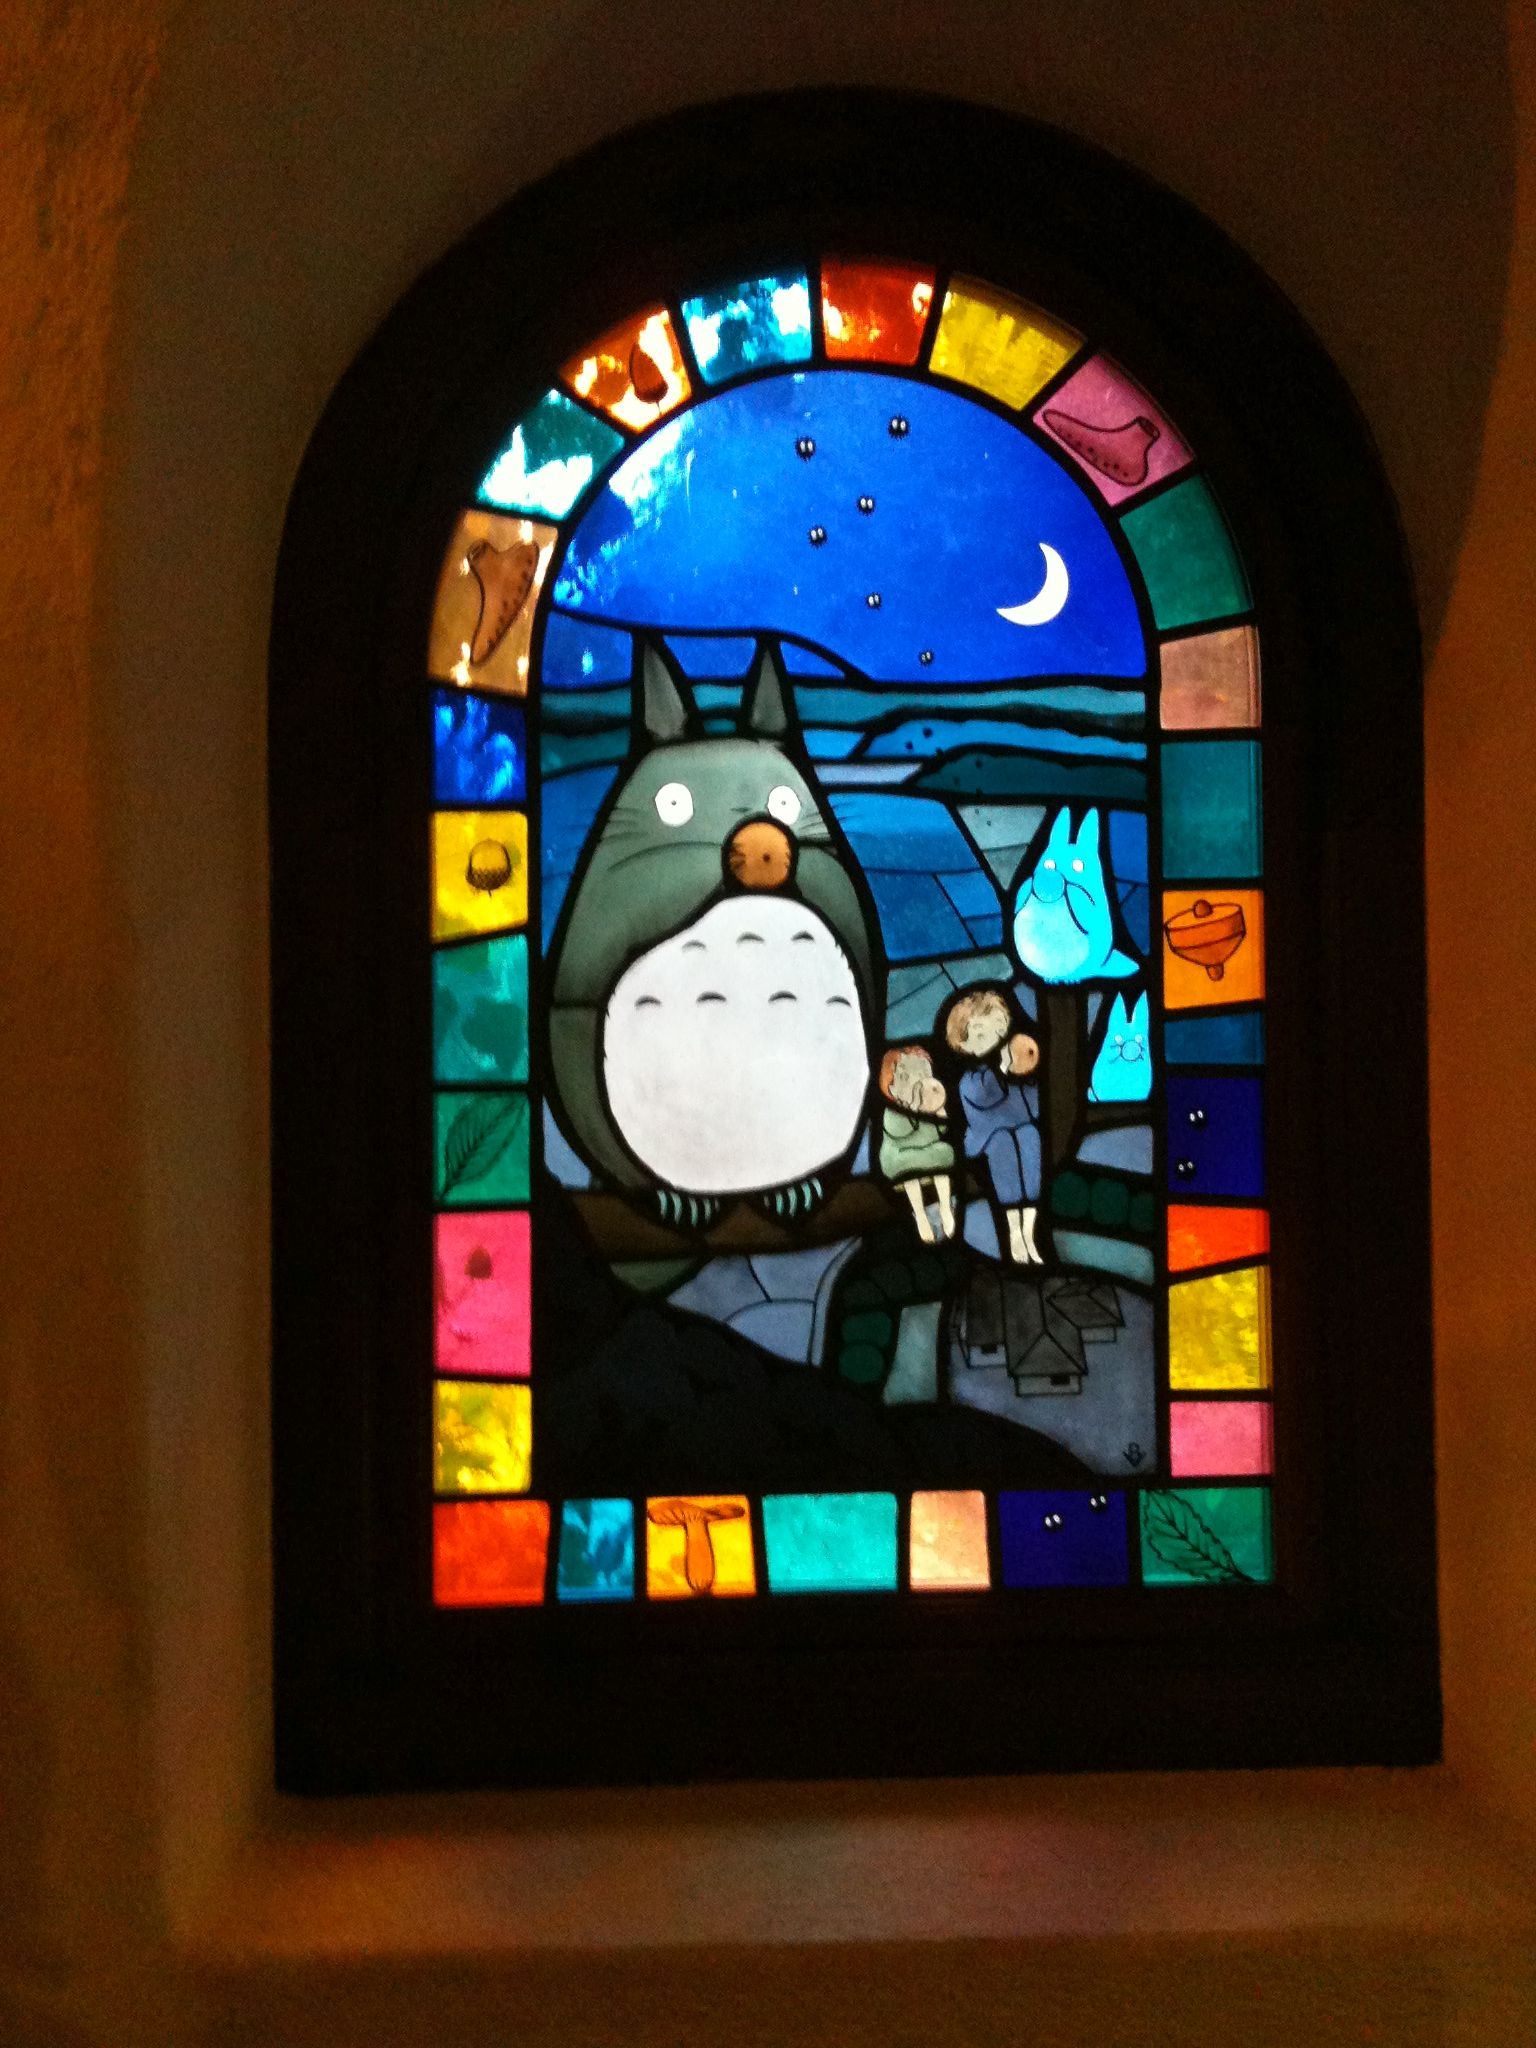 Stained glass windows everywhere inside the Ghibili Museum, even in the toilets. Whimsical lovely place!